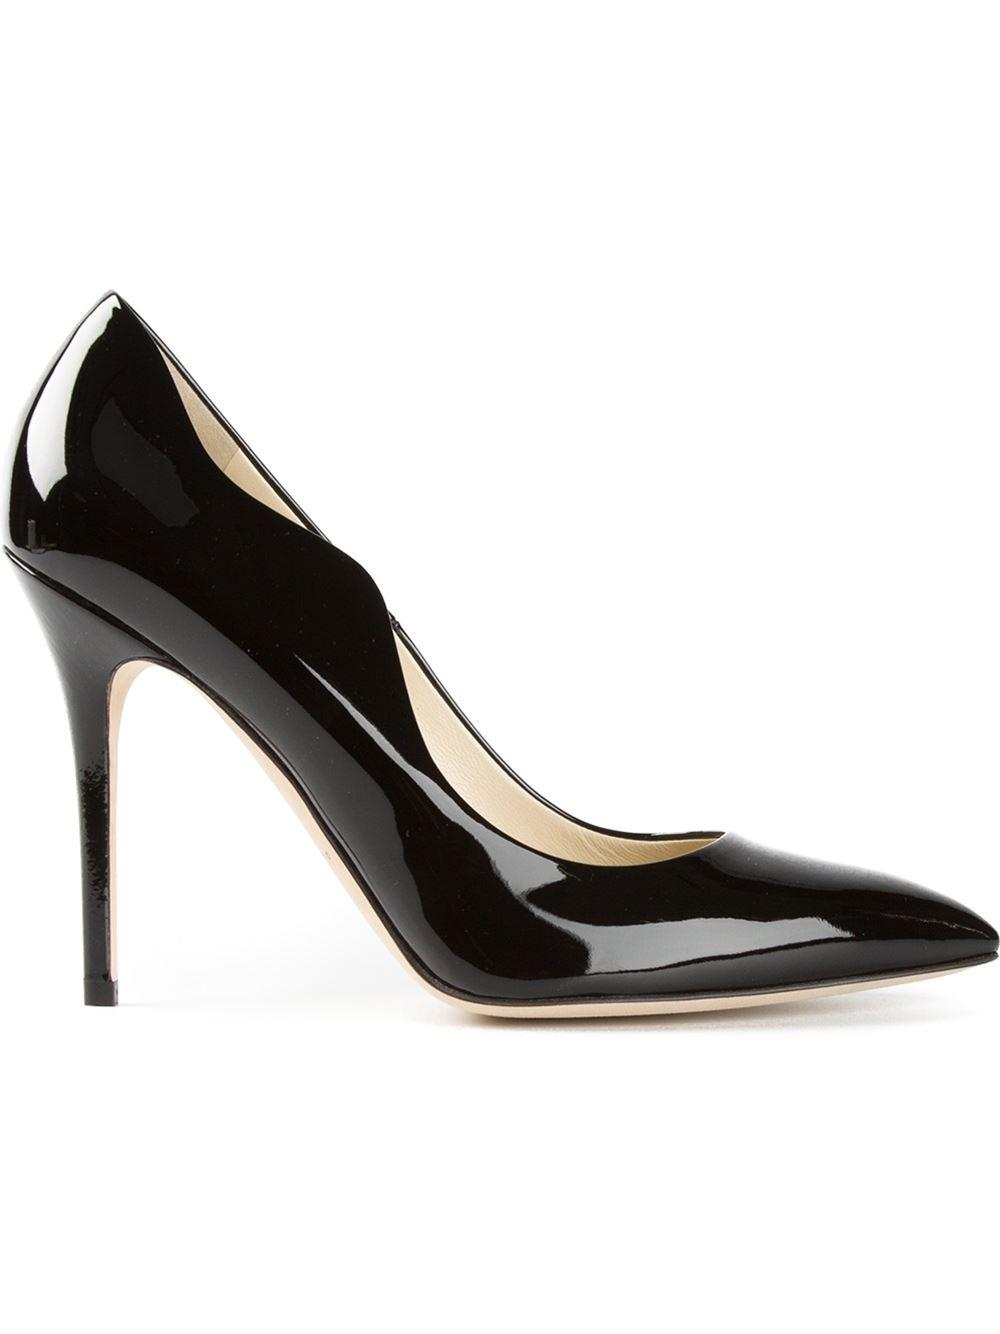 Brian atwood 'besame' pumps